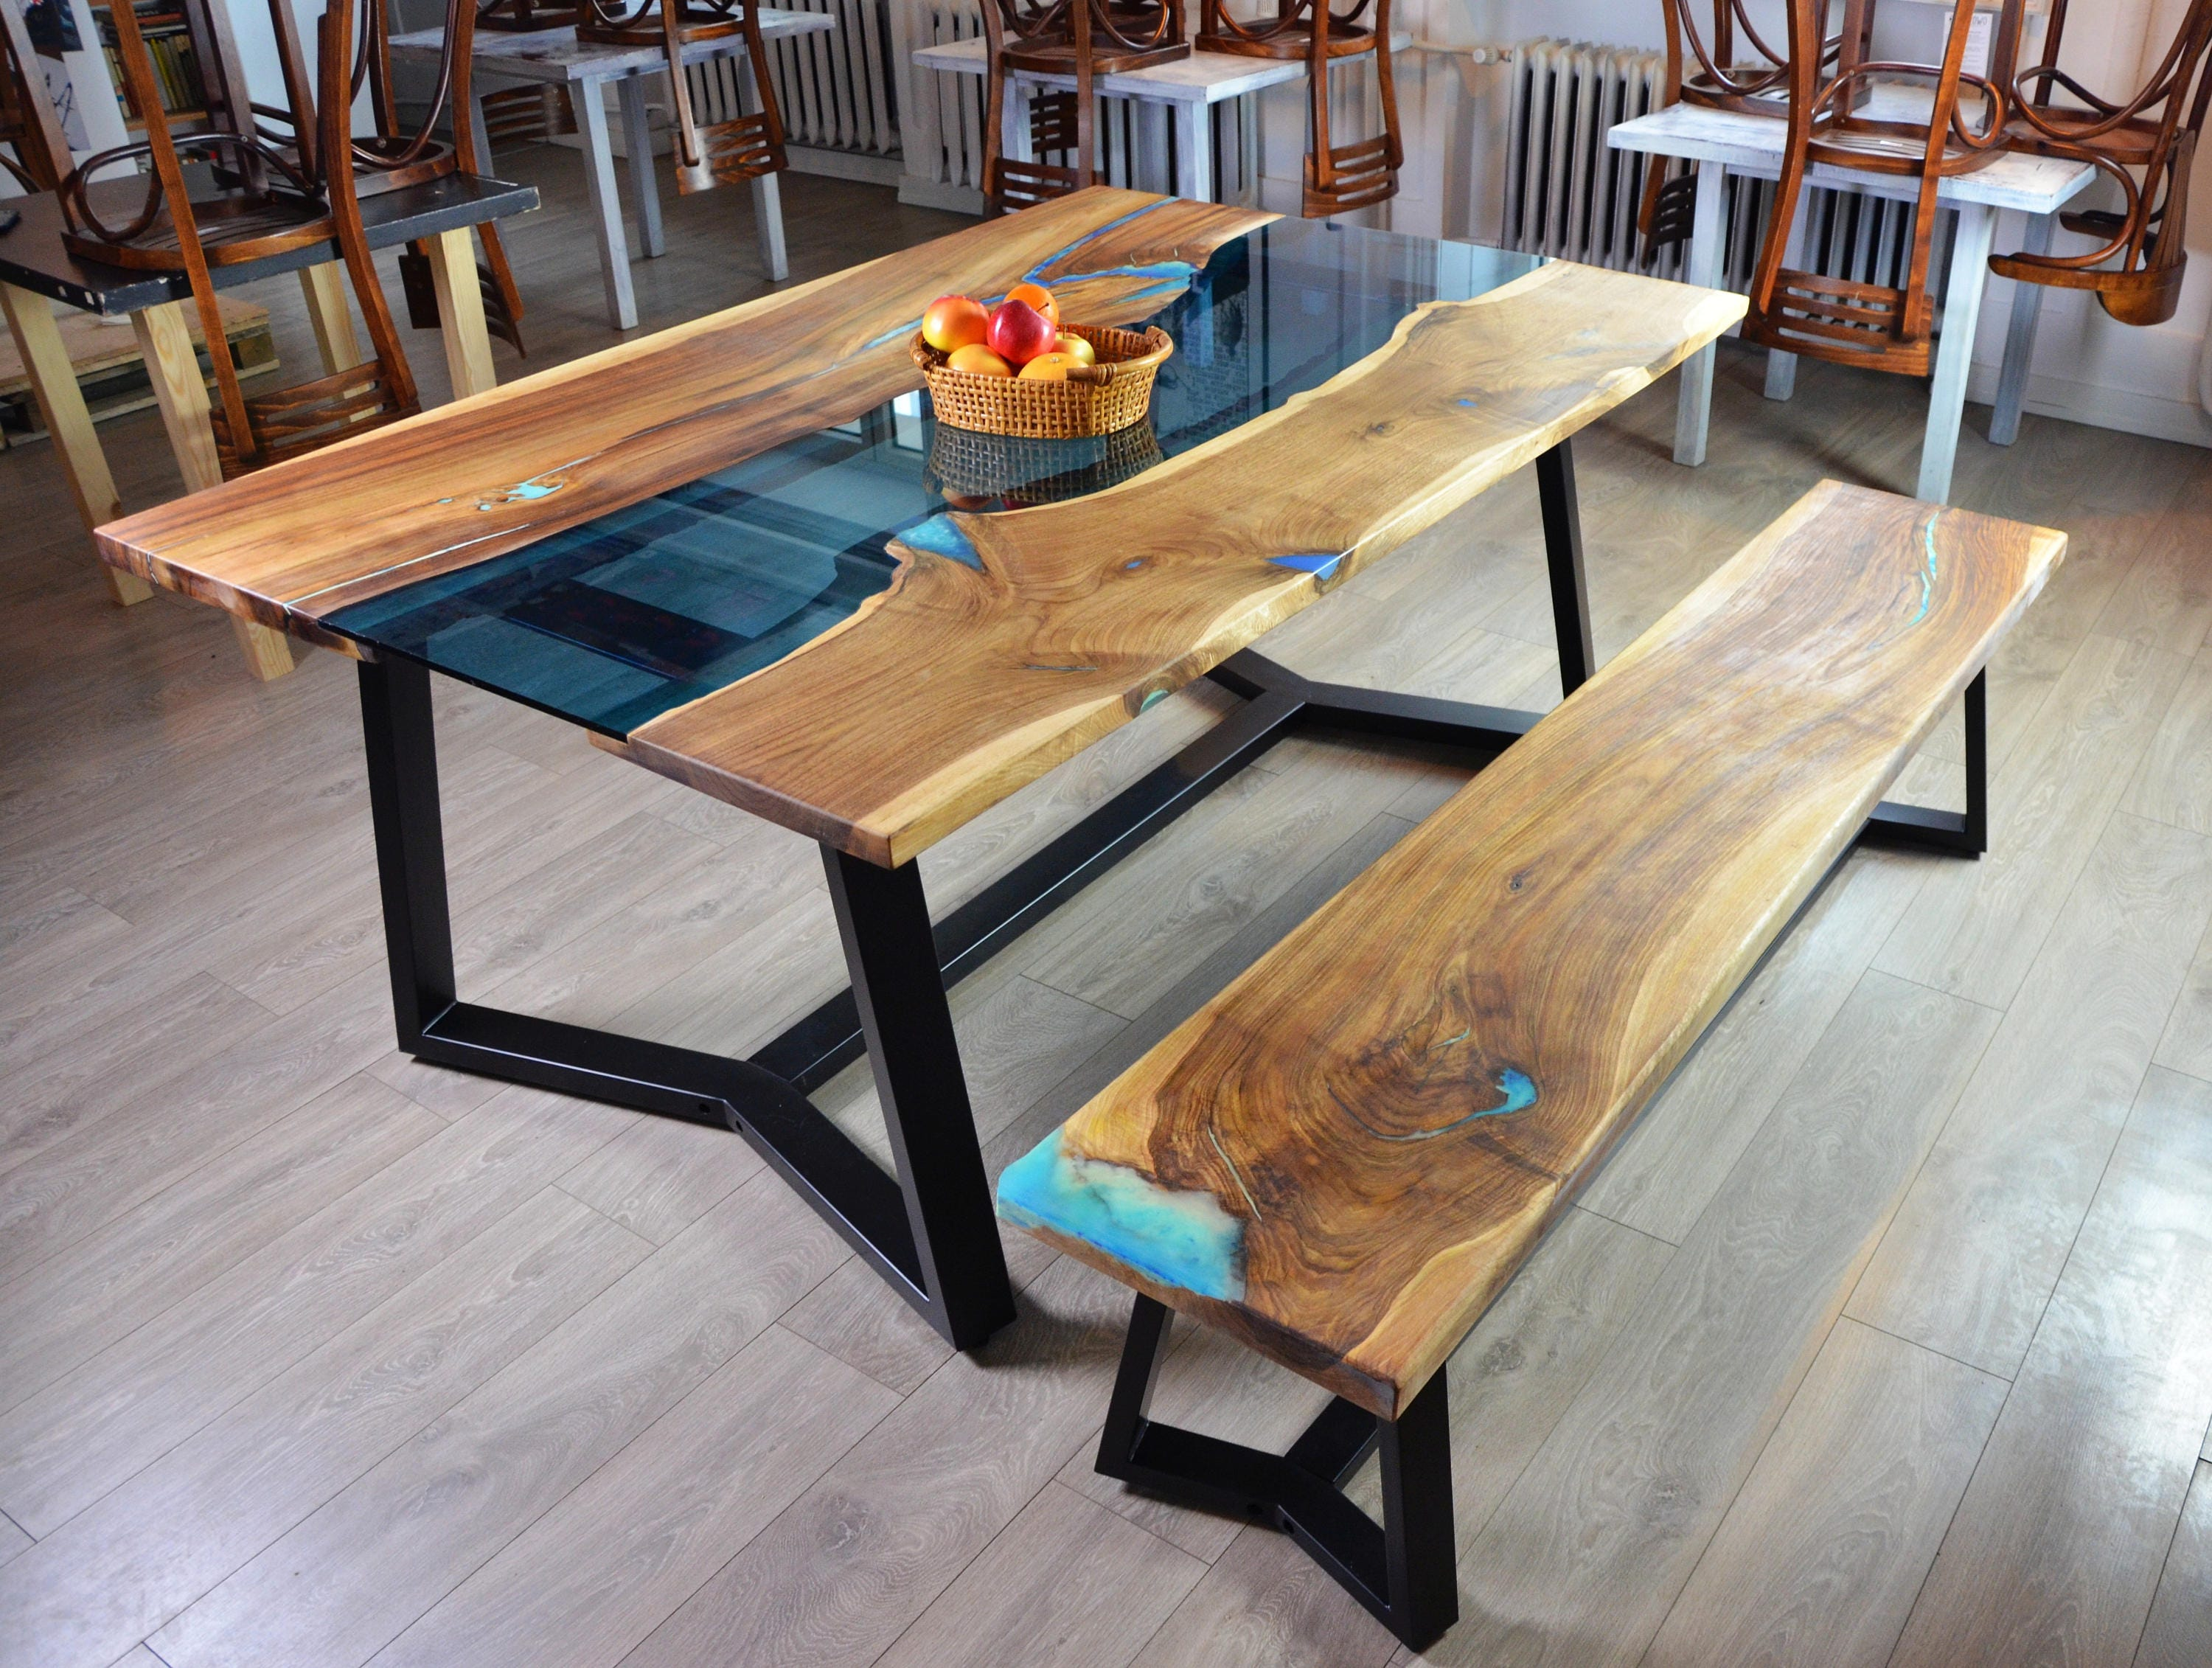 Live edge river dining table with bench and glowing resin fill